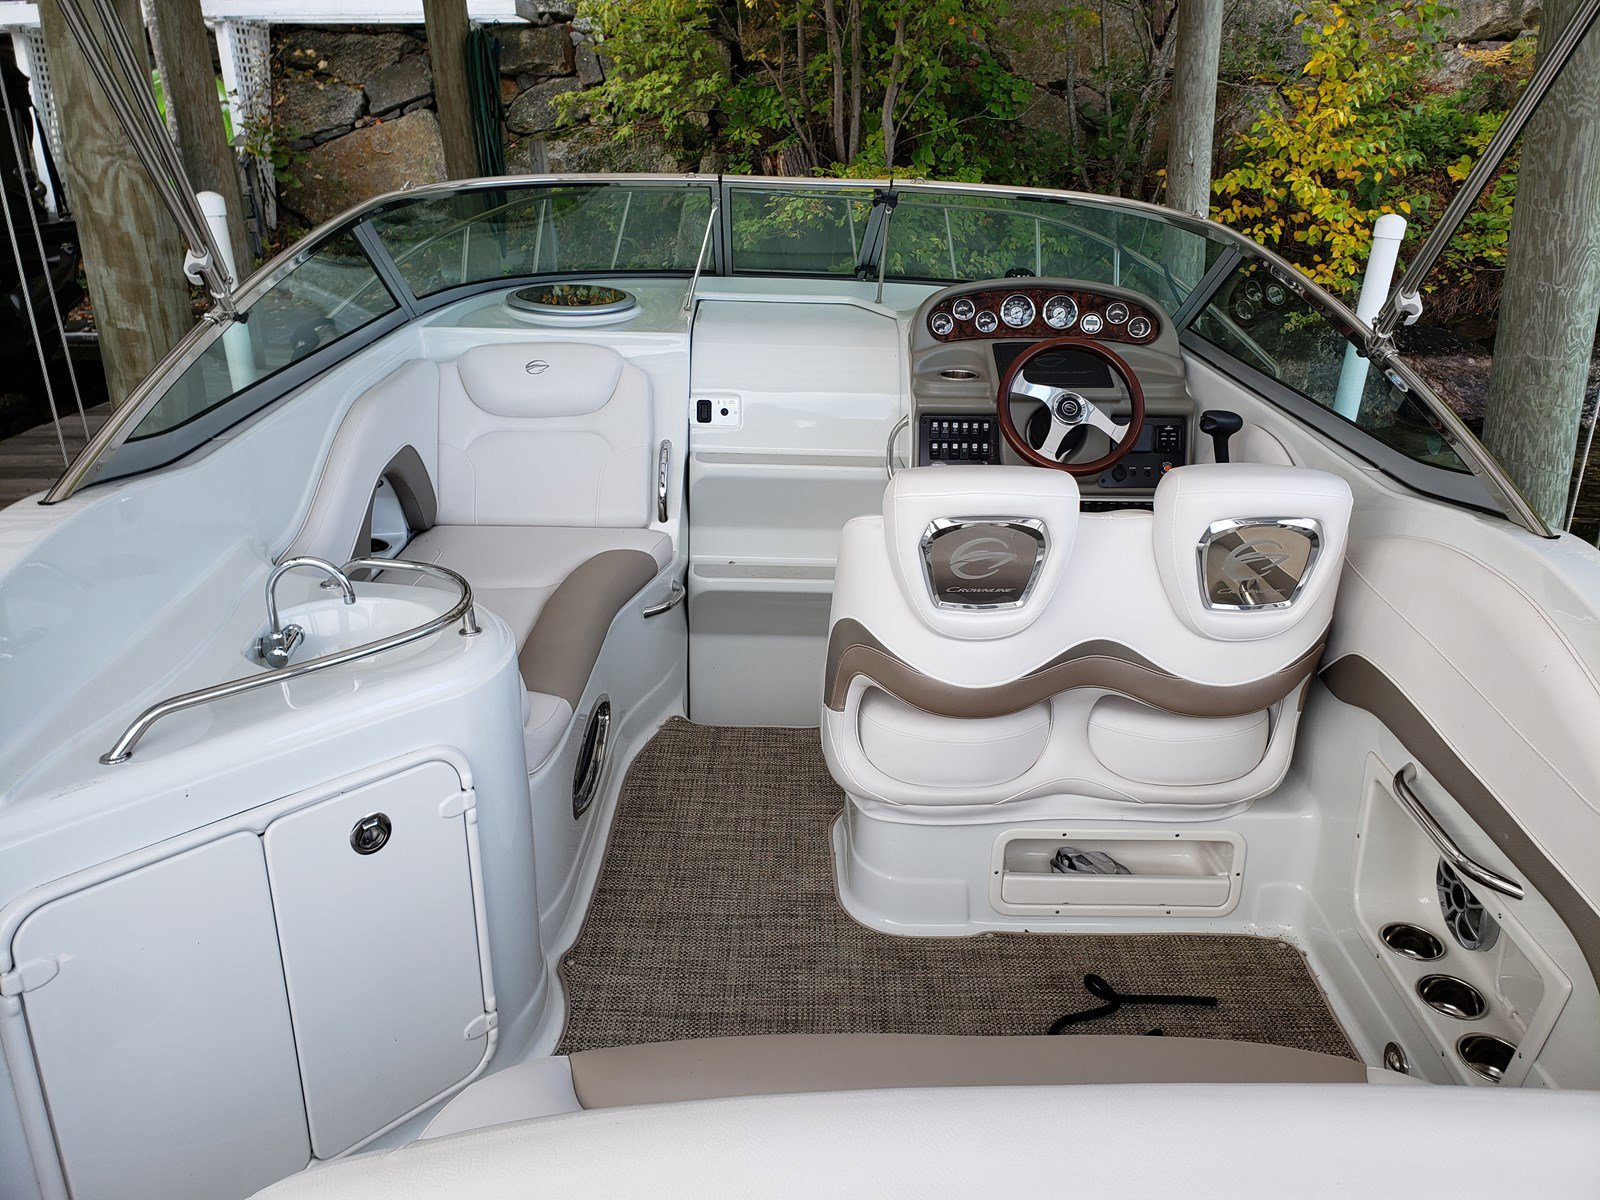 2015 Crownline boat for sale, model of the boat is 264CR & Image # 4 of 10